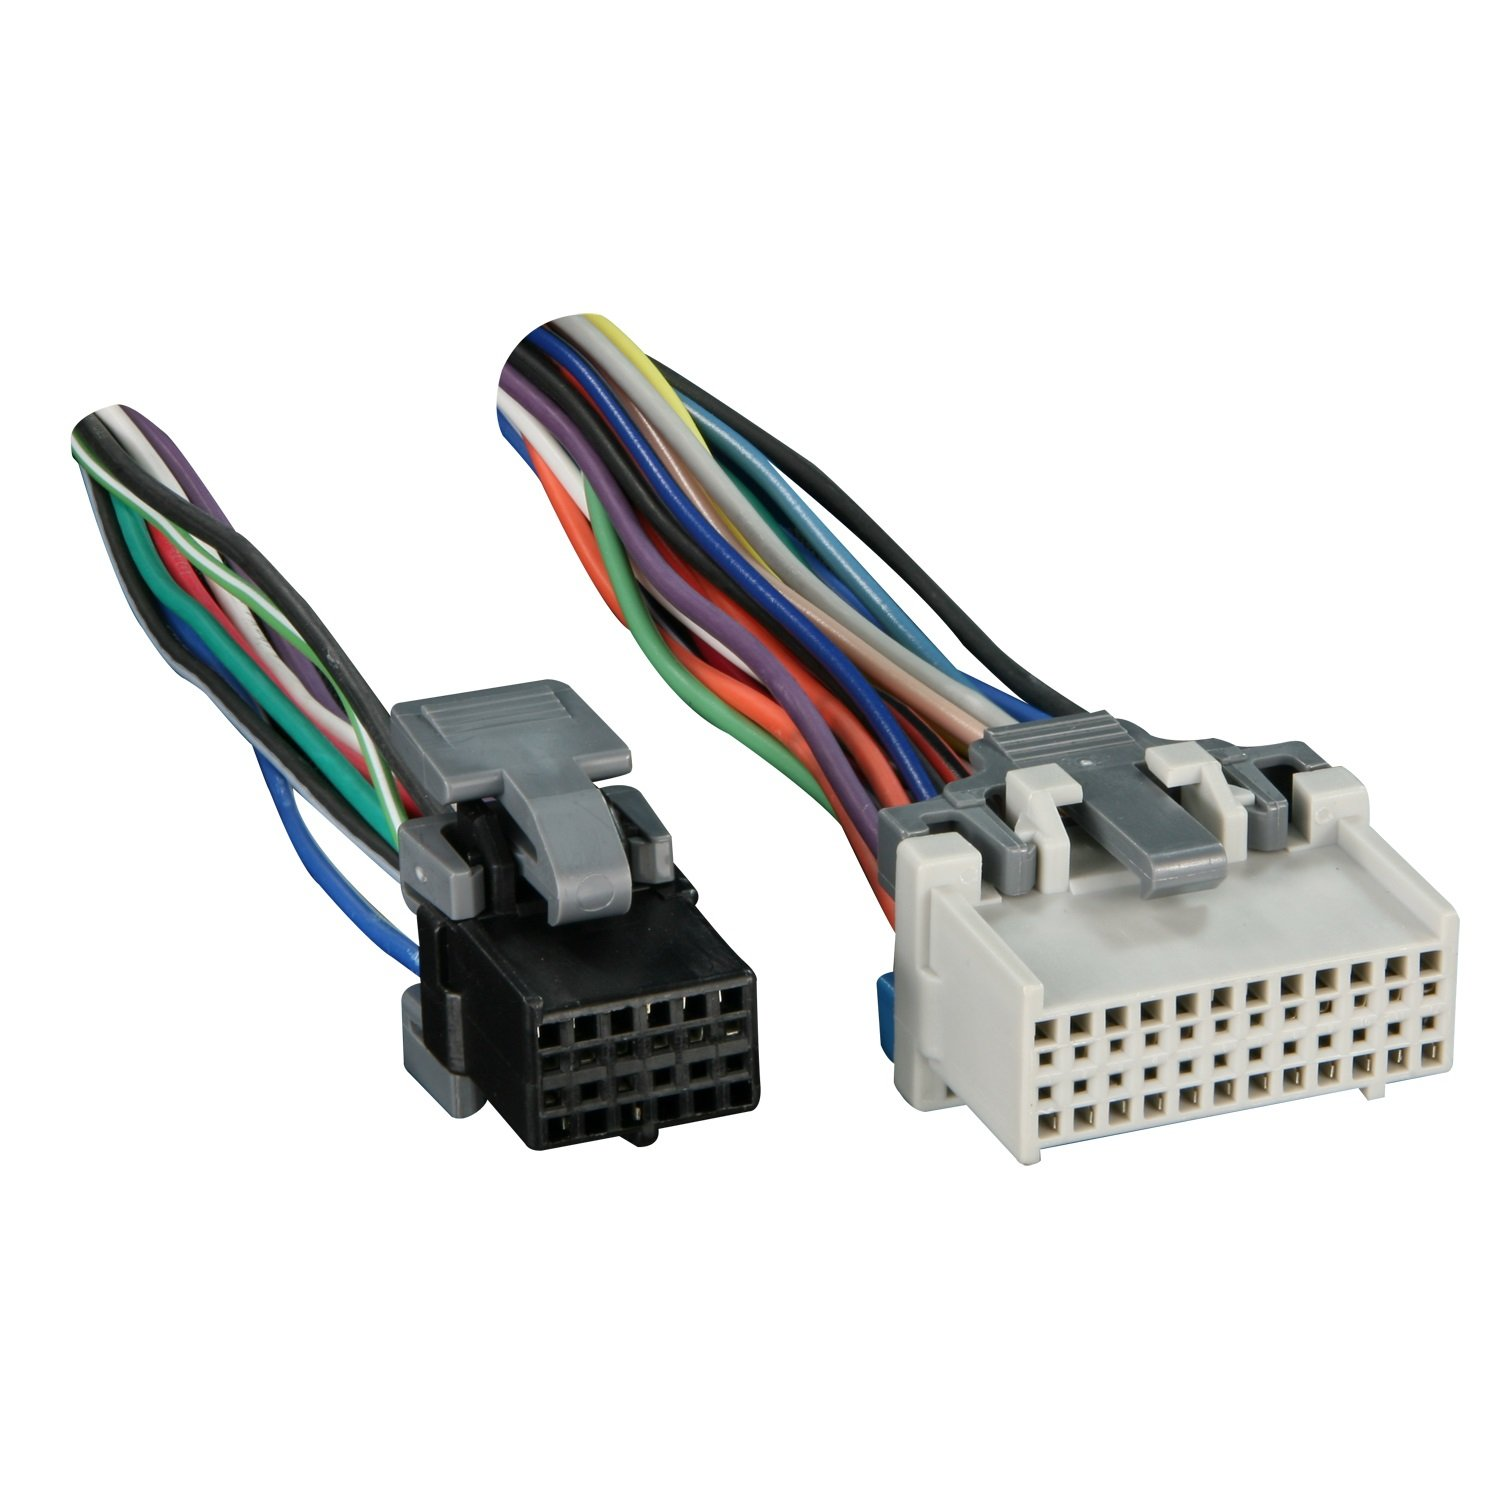 711log4bdML._SL1500_ amazon com metra turbowires 71 2003 1 wiring harness car electronics where to buy a trailer wiring harness at aneh.co